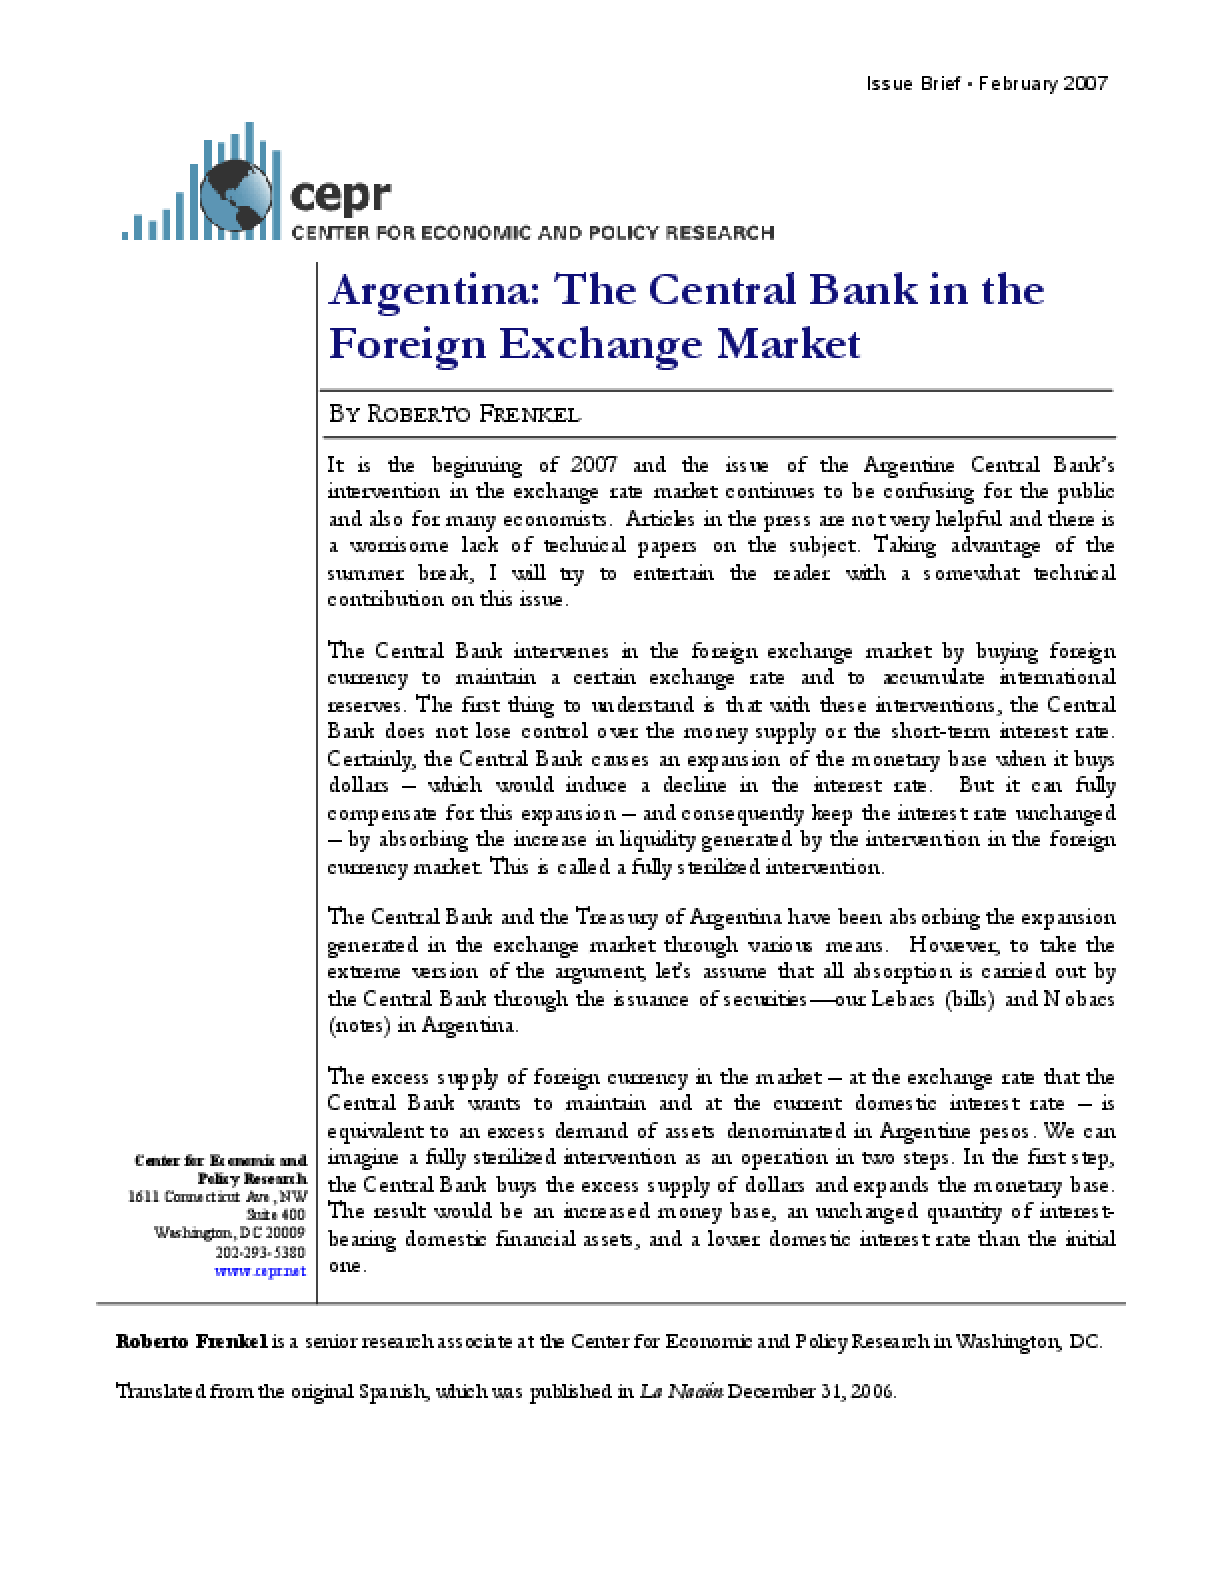 Argentina: The Central Bank in the Foreign Exchange Market